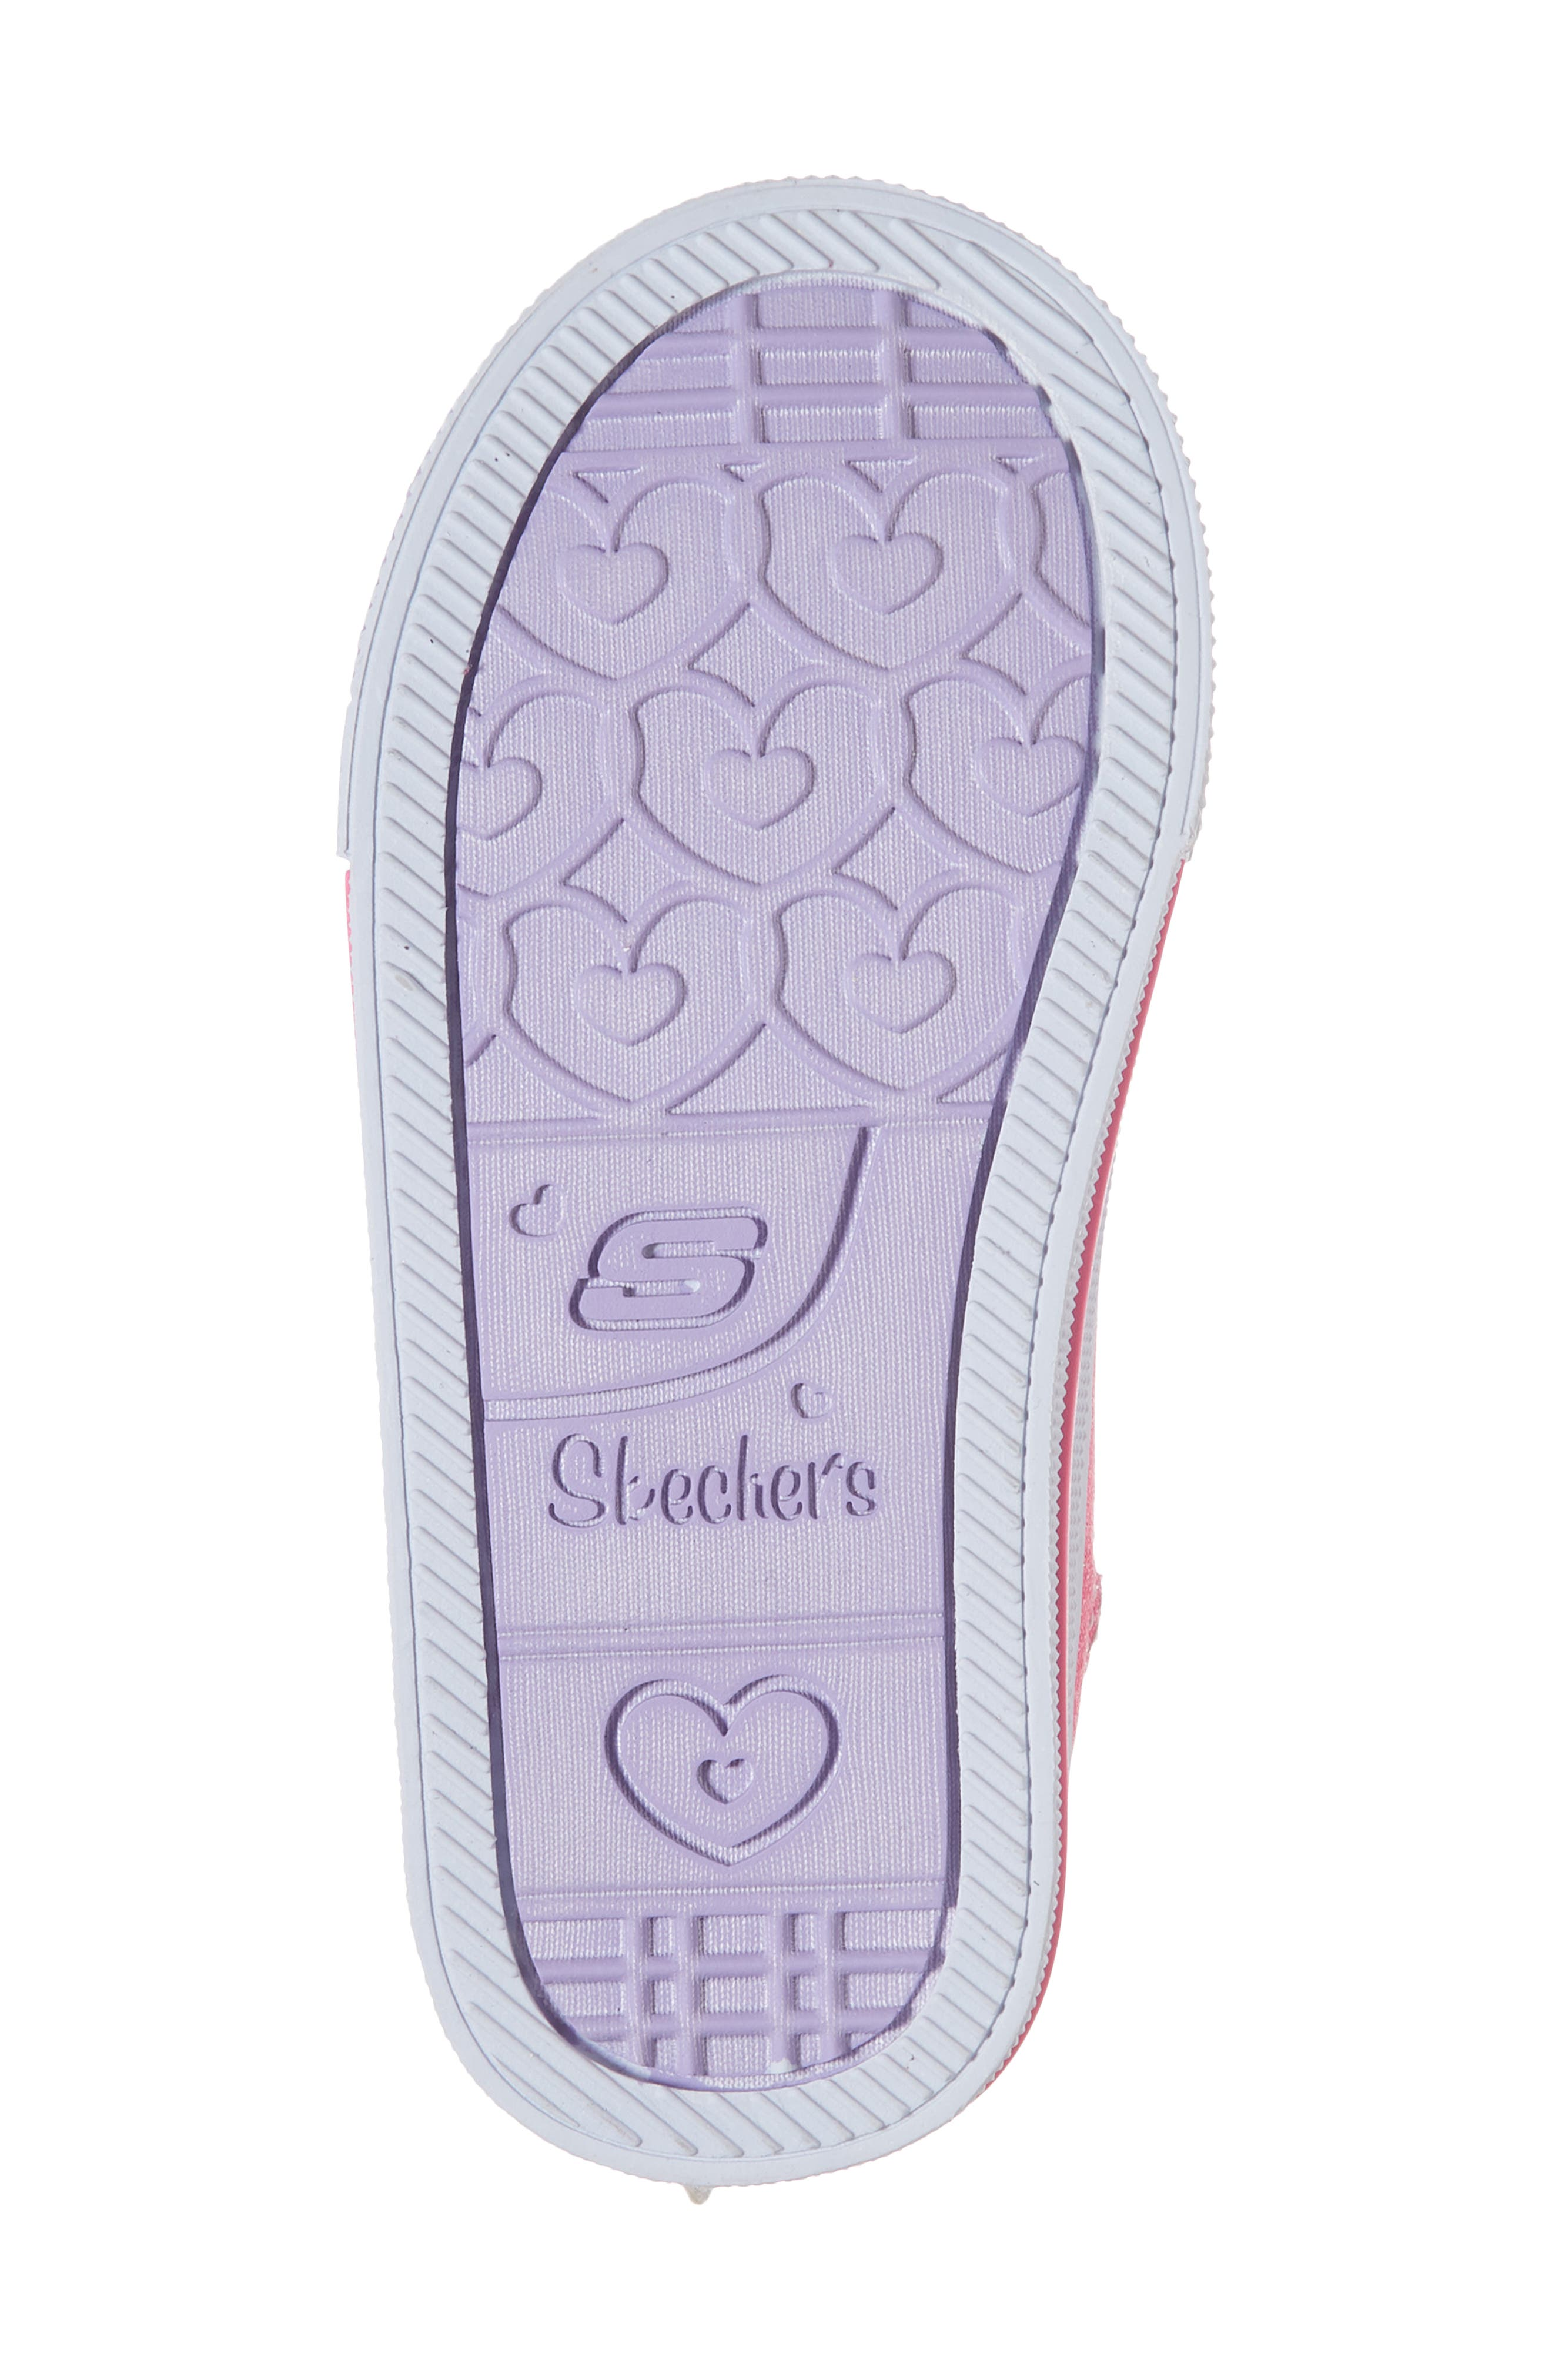 Twinkle Toes Shuffles Fooling Flutters Light-Up High Top Sneaker,                             Alternate thumbnail 6, color,                             Hot Pink/ Silver